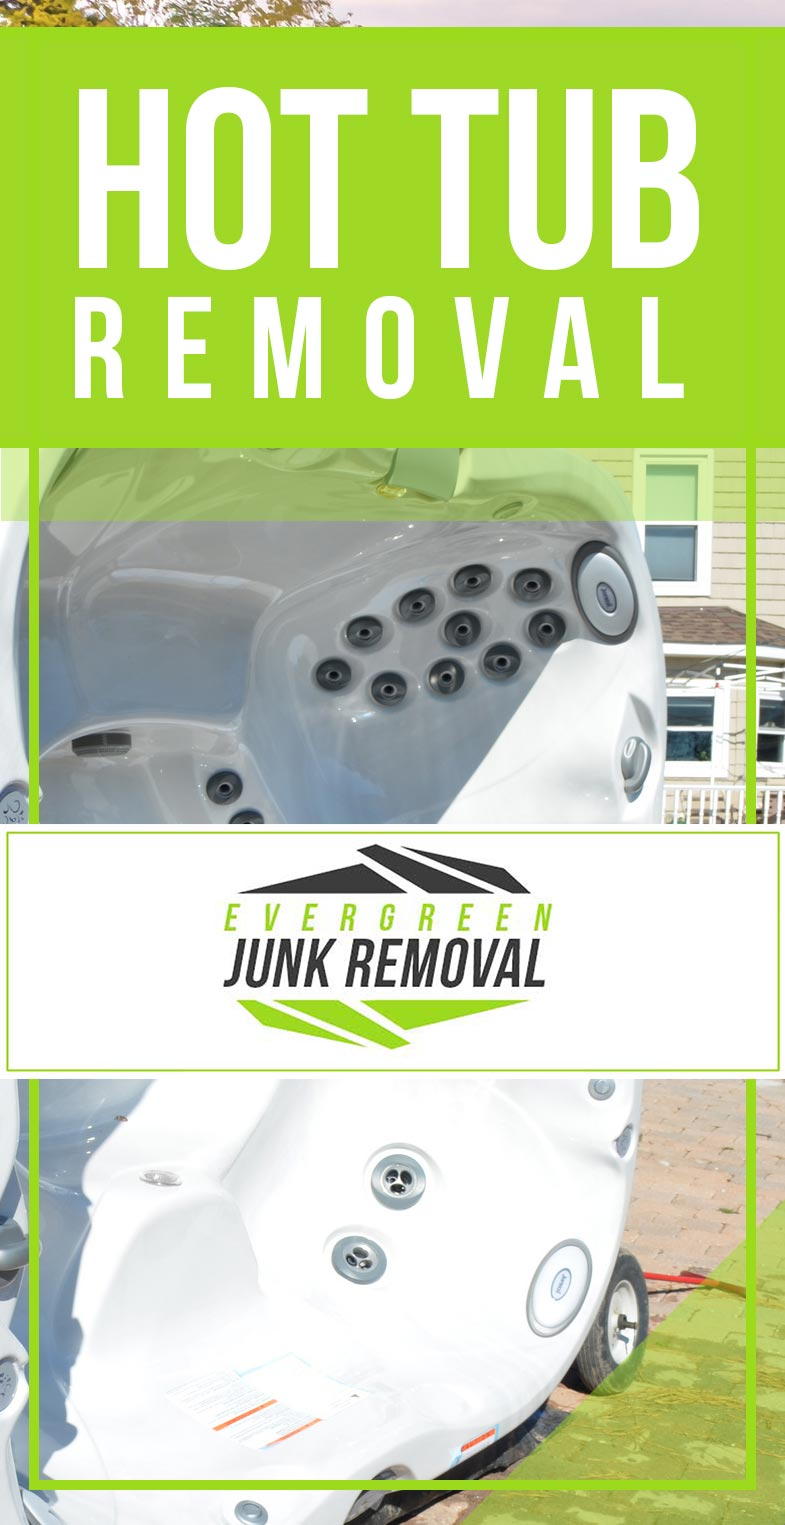 East Omaha Hot Tub Removal